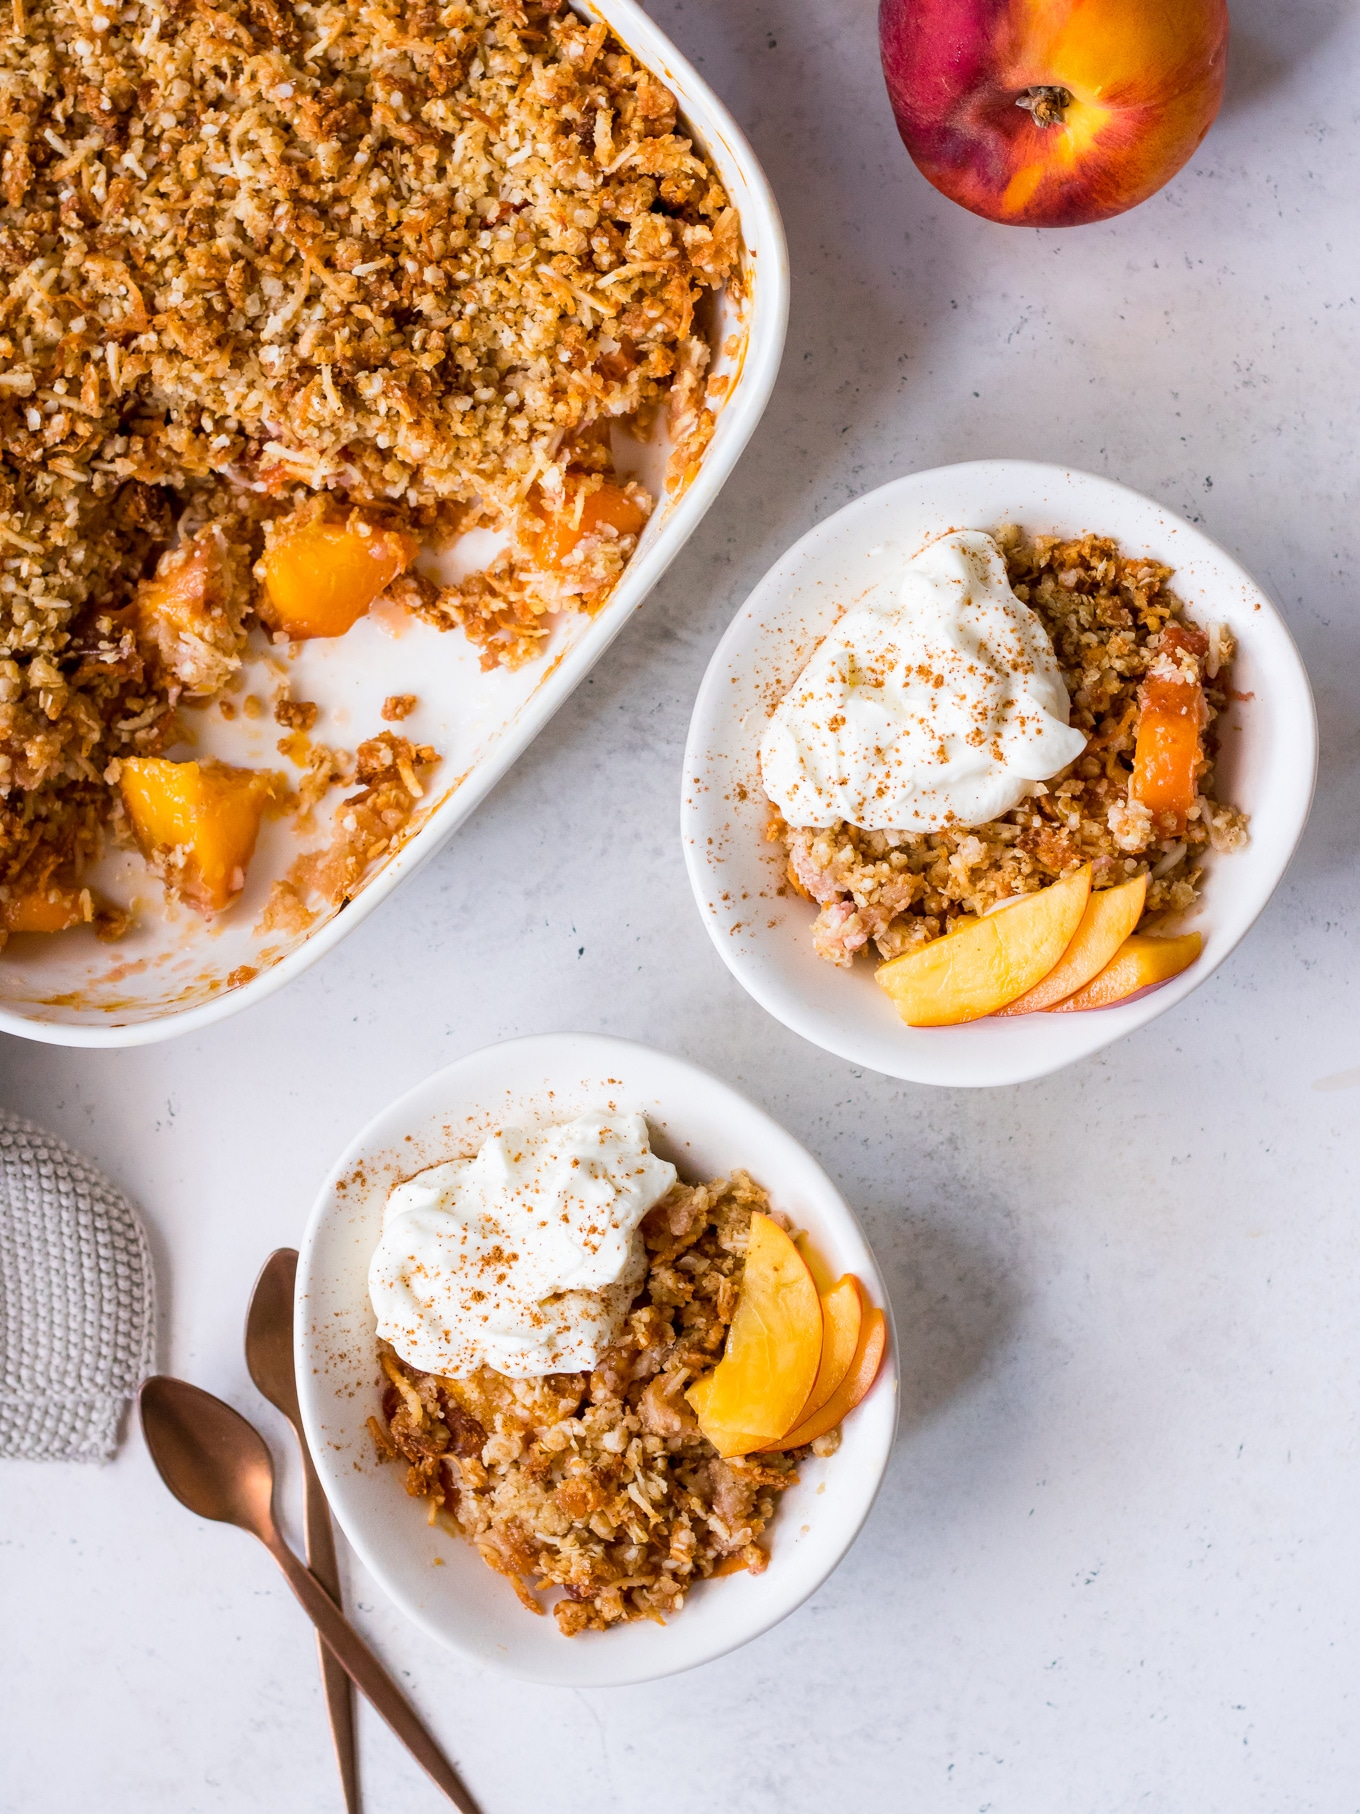 Small bowls of gluten free stone fruit crumble topped with nectarine slices and yoghurt